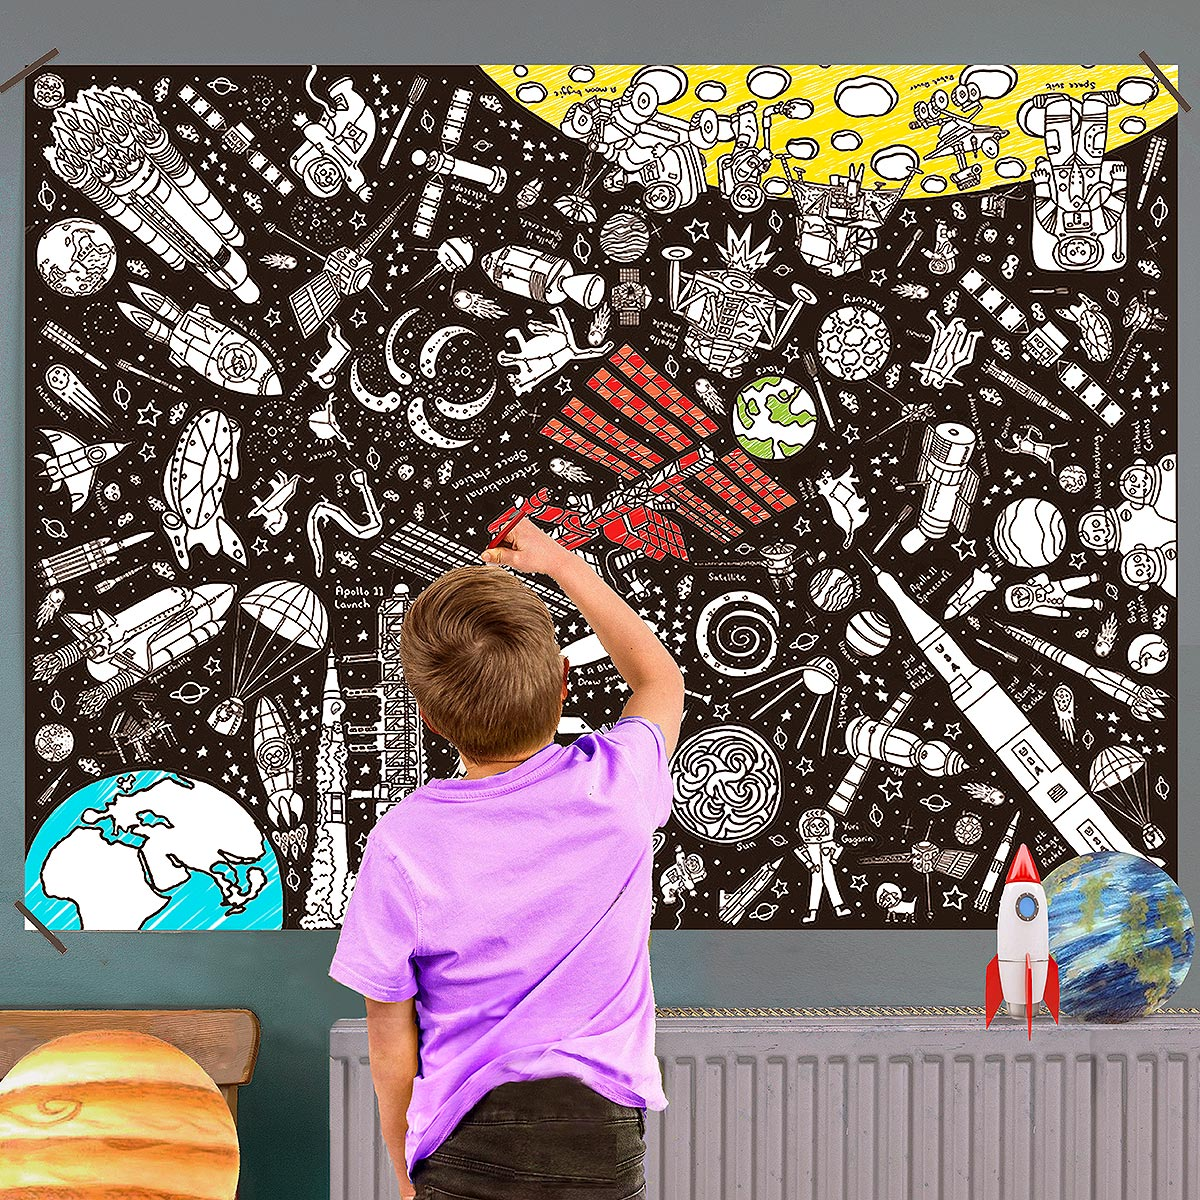 boy colouring in poster on wall